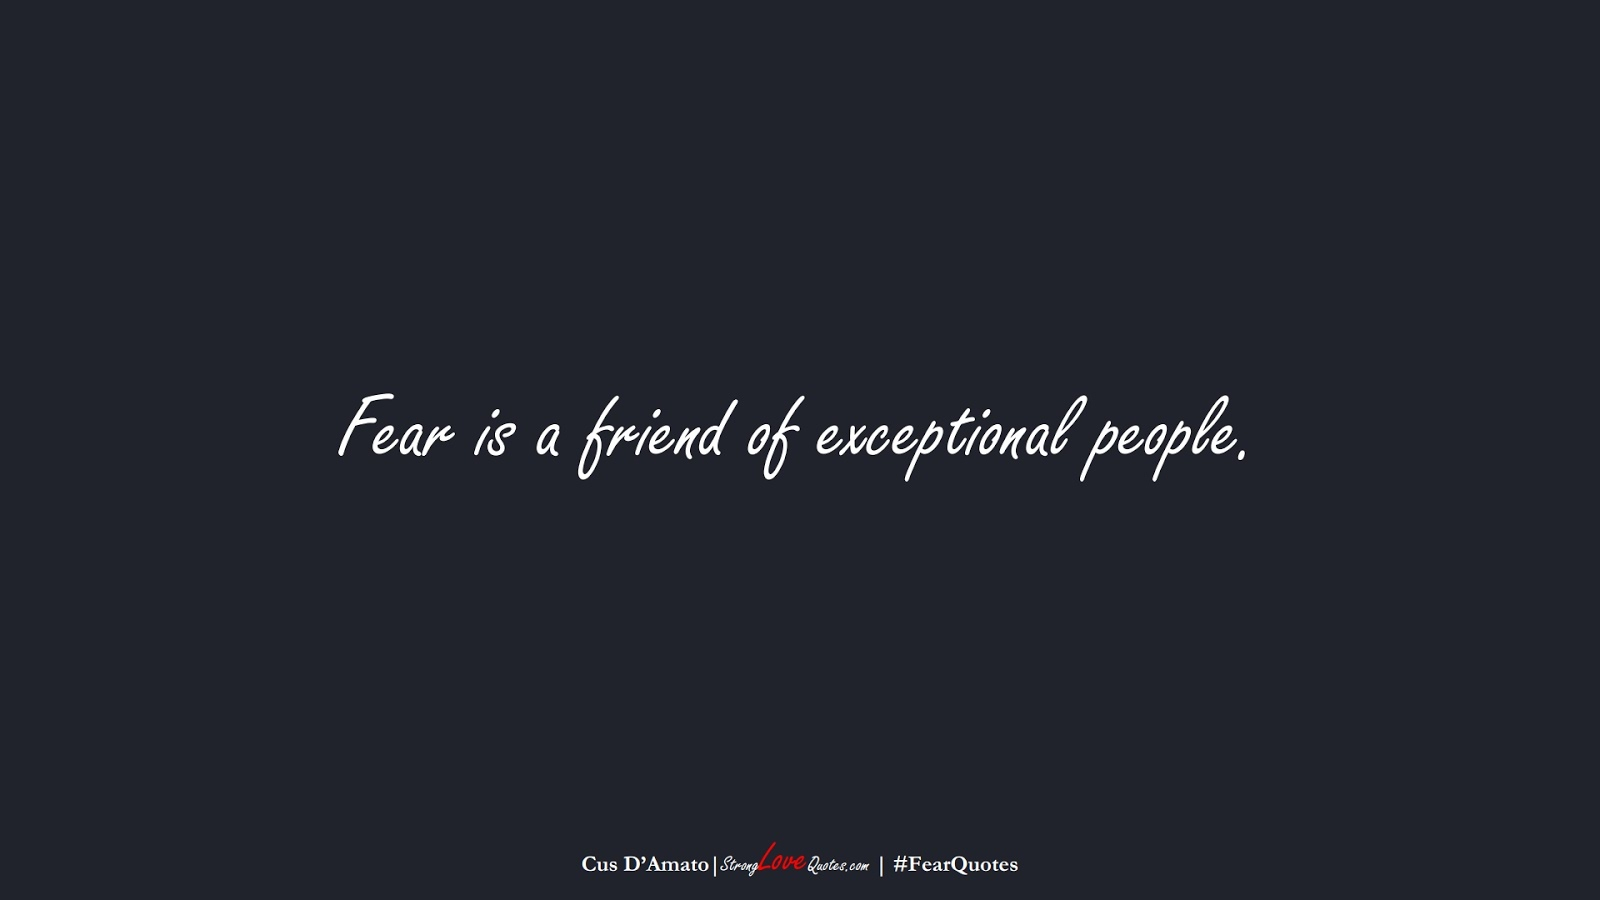 Fear is a friend of exceptional people. (Cus D'Amato);  #FearQuotes